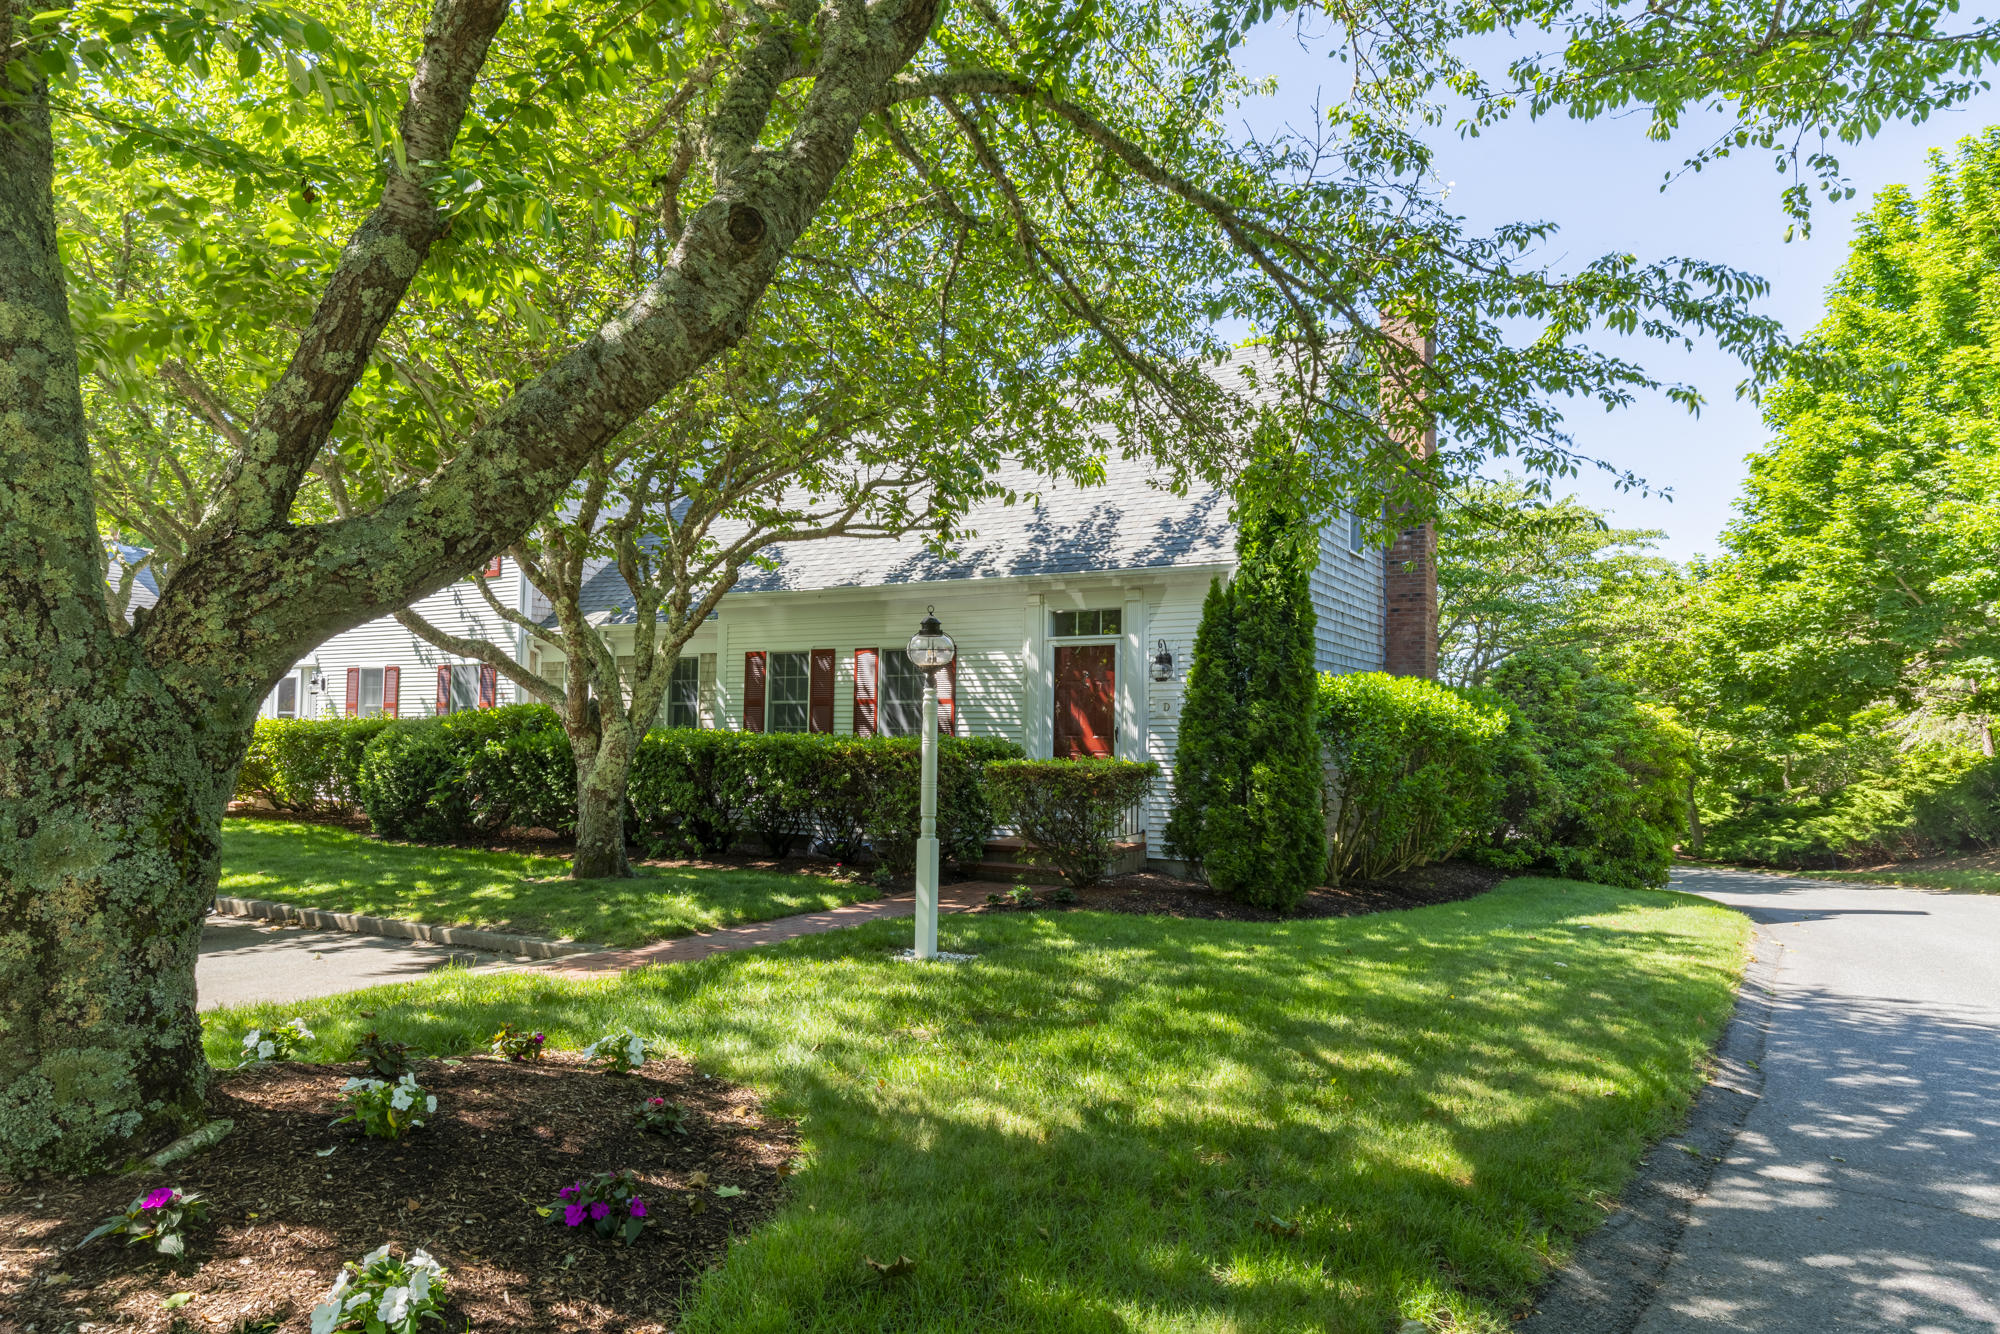 367-D Orleans Road, Chatham MA, 02633